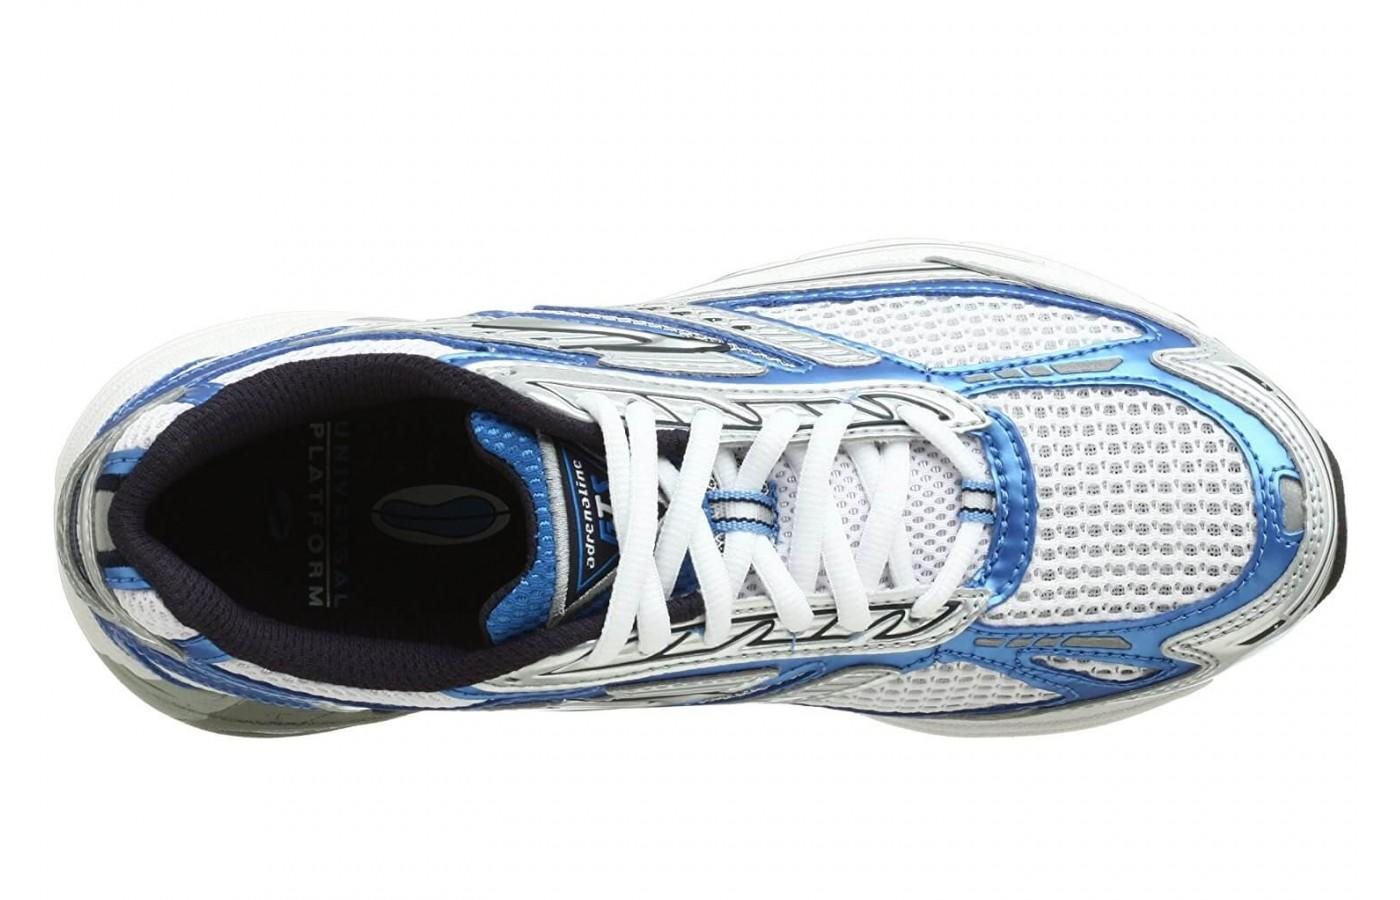 Brooks Adrenaline GTS 8 has a traditional lacing system